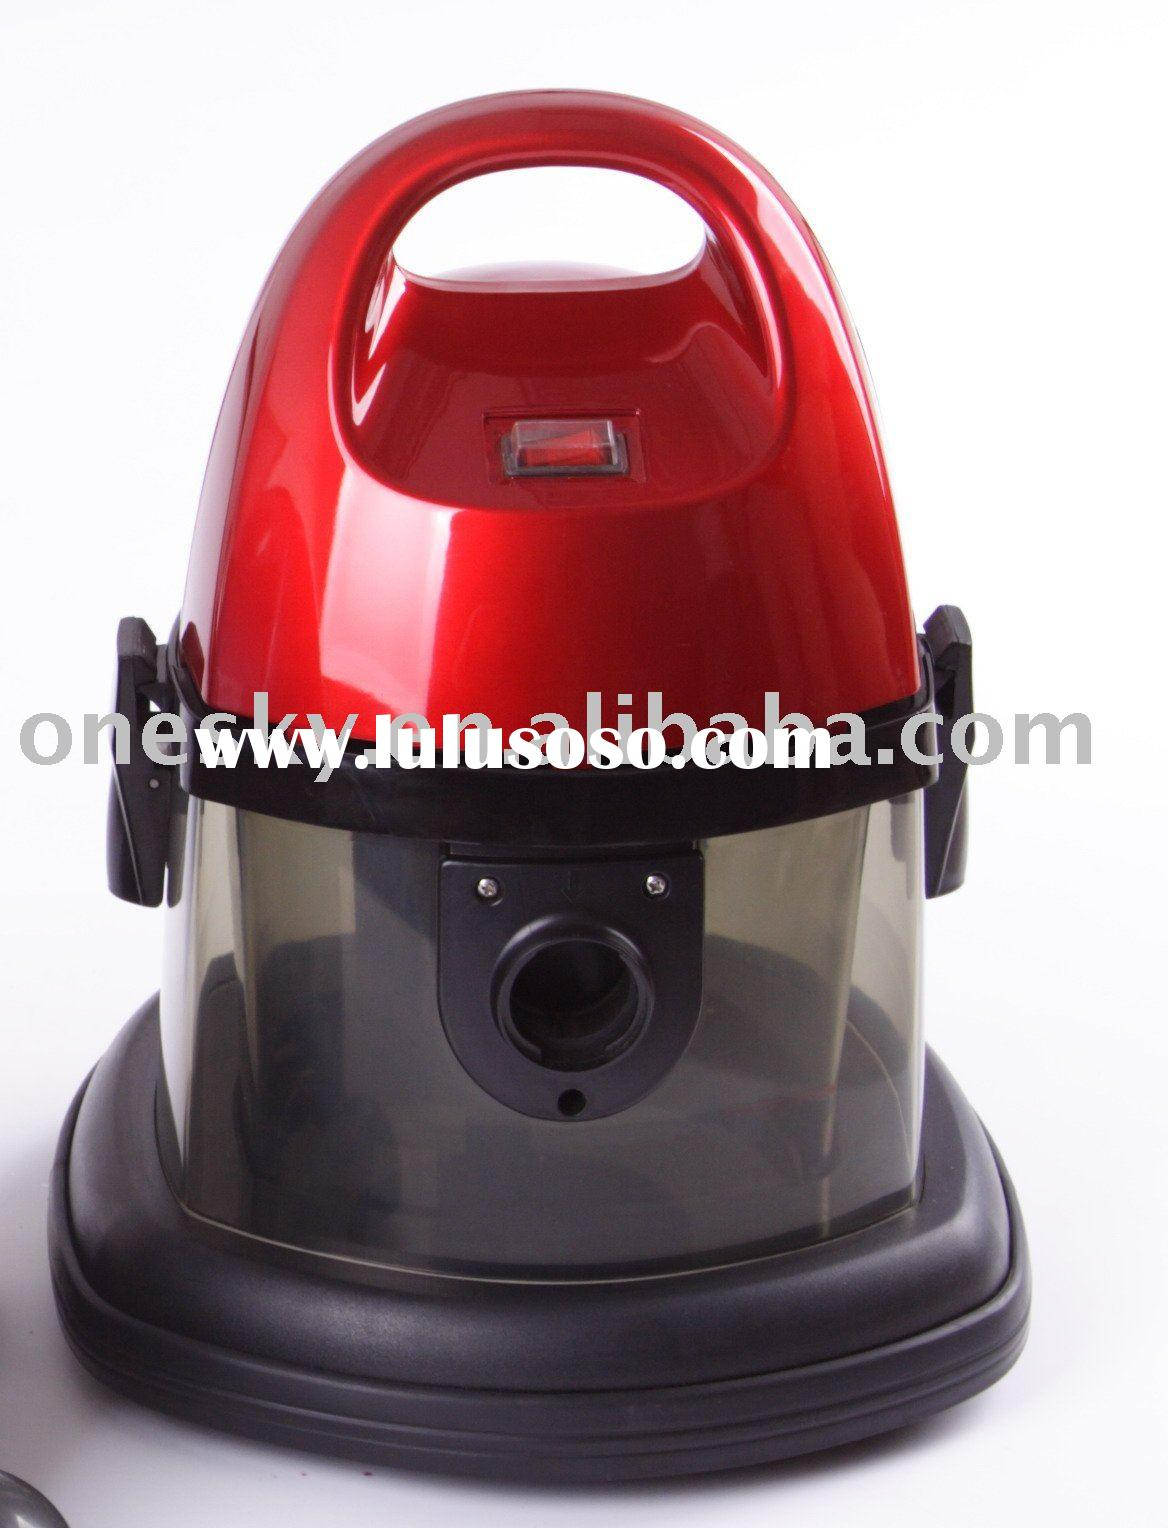 Compact Cyclone and Water Filter Vacuum cleaner